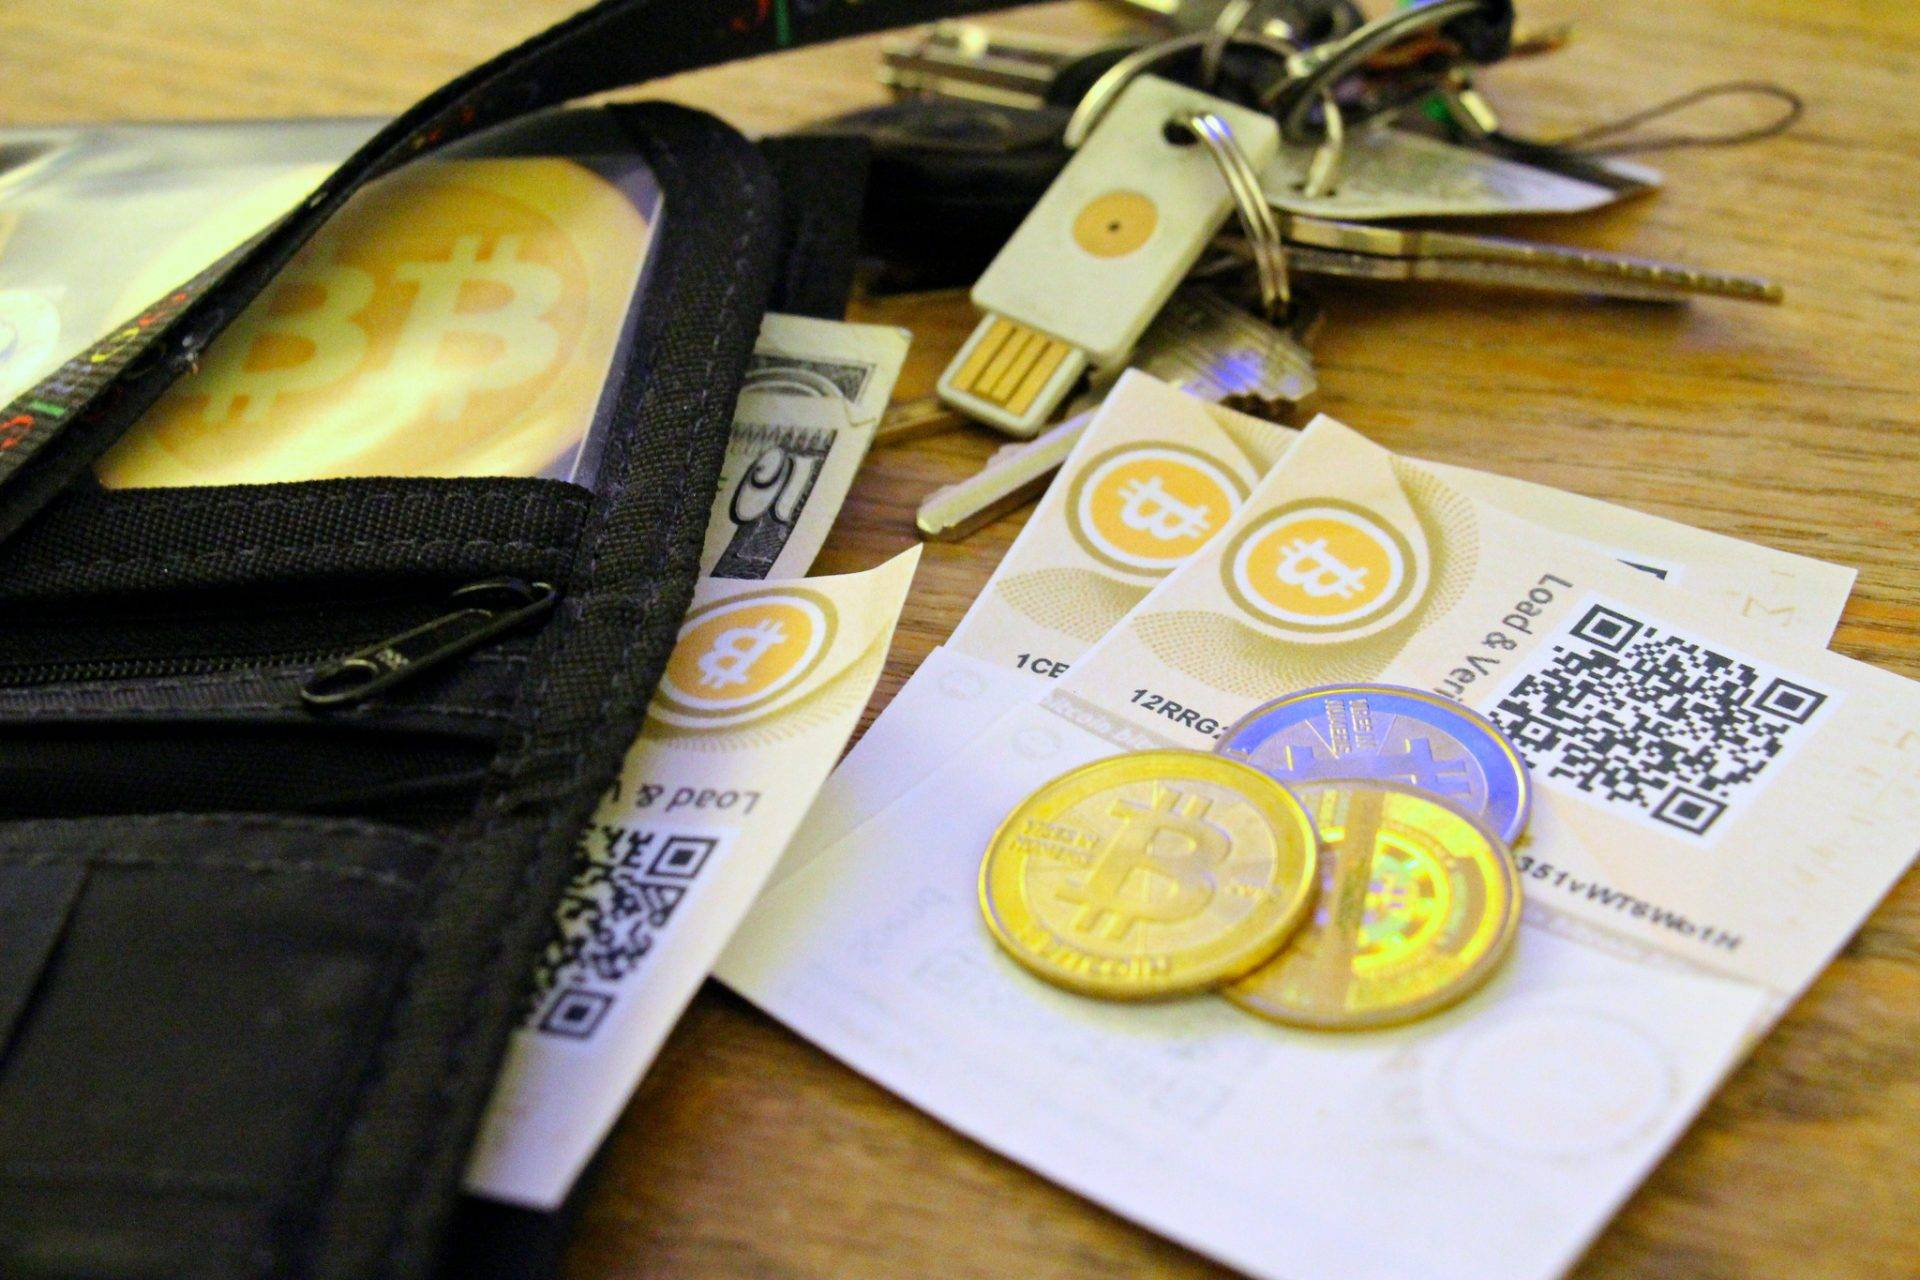 Regulations Could Limit Use of P2P Bitcoin Exchanges Like LocalBitcoins